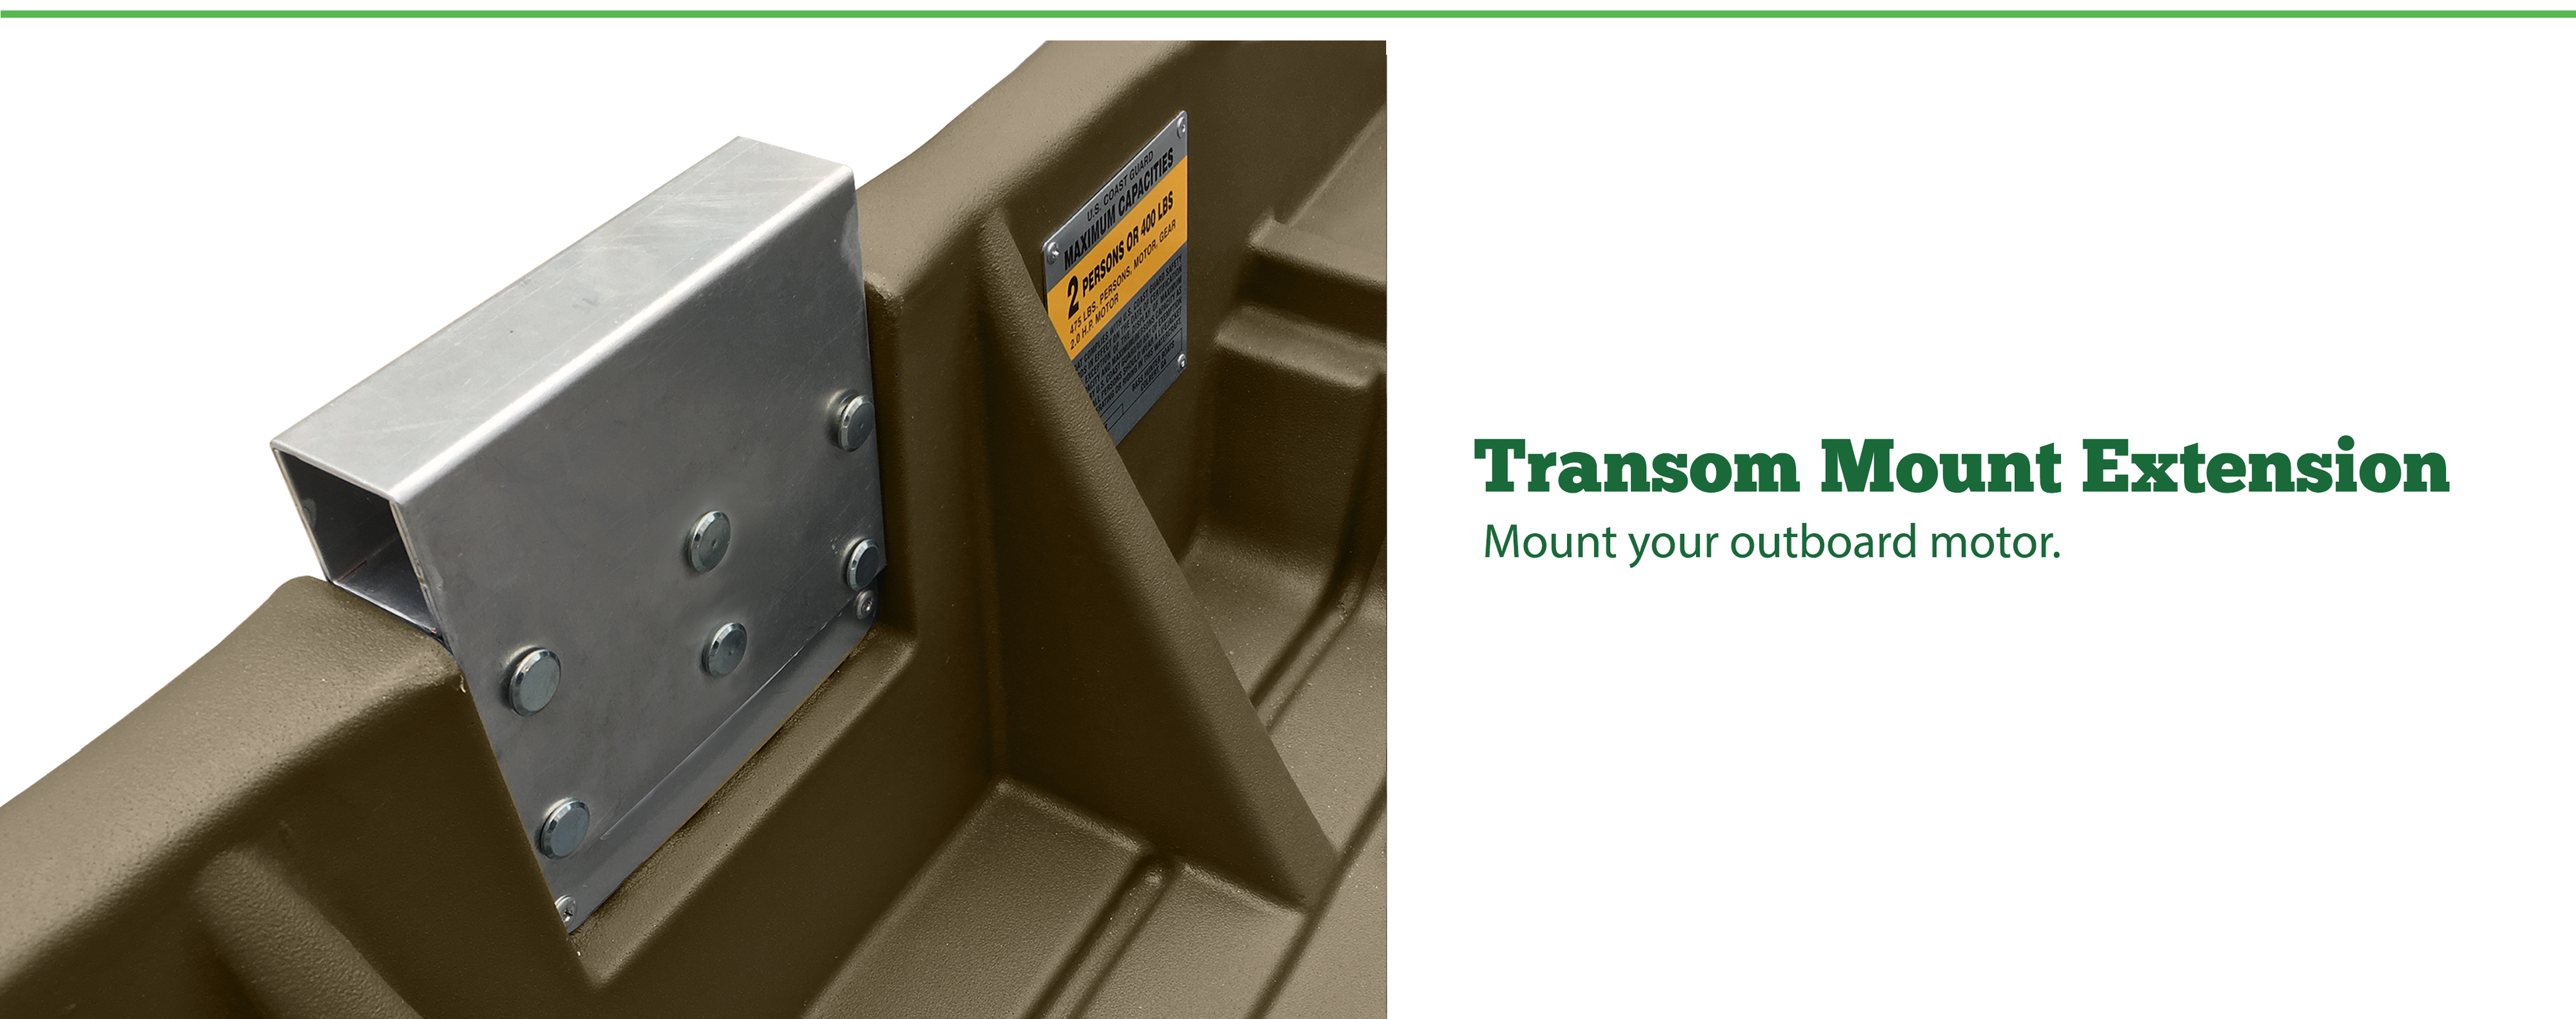 Transom Mount Extension